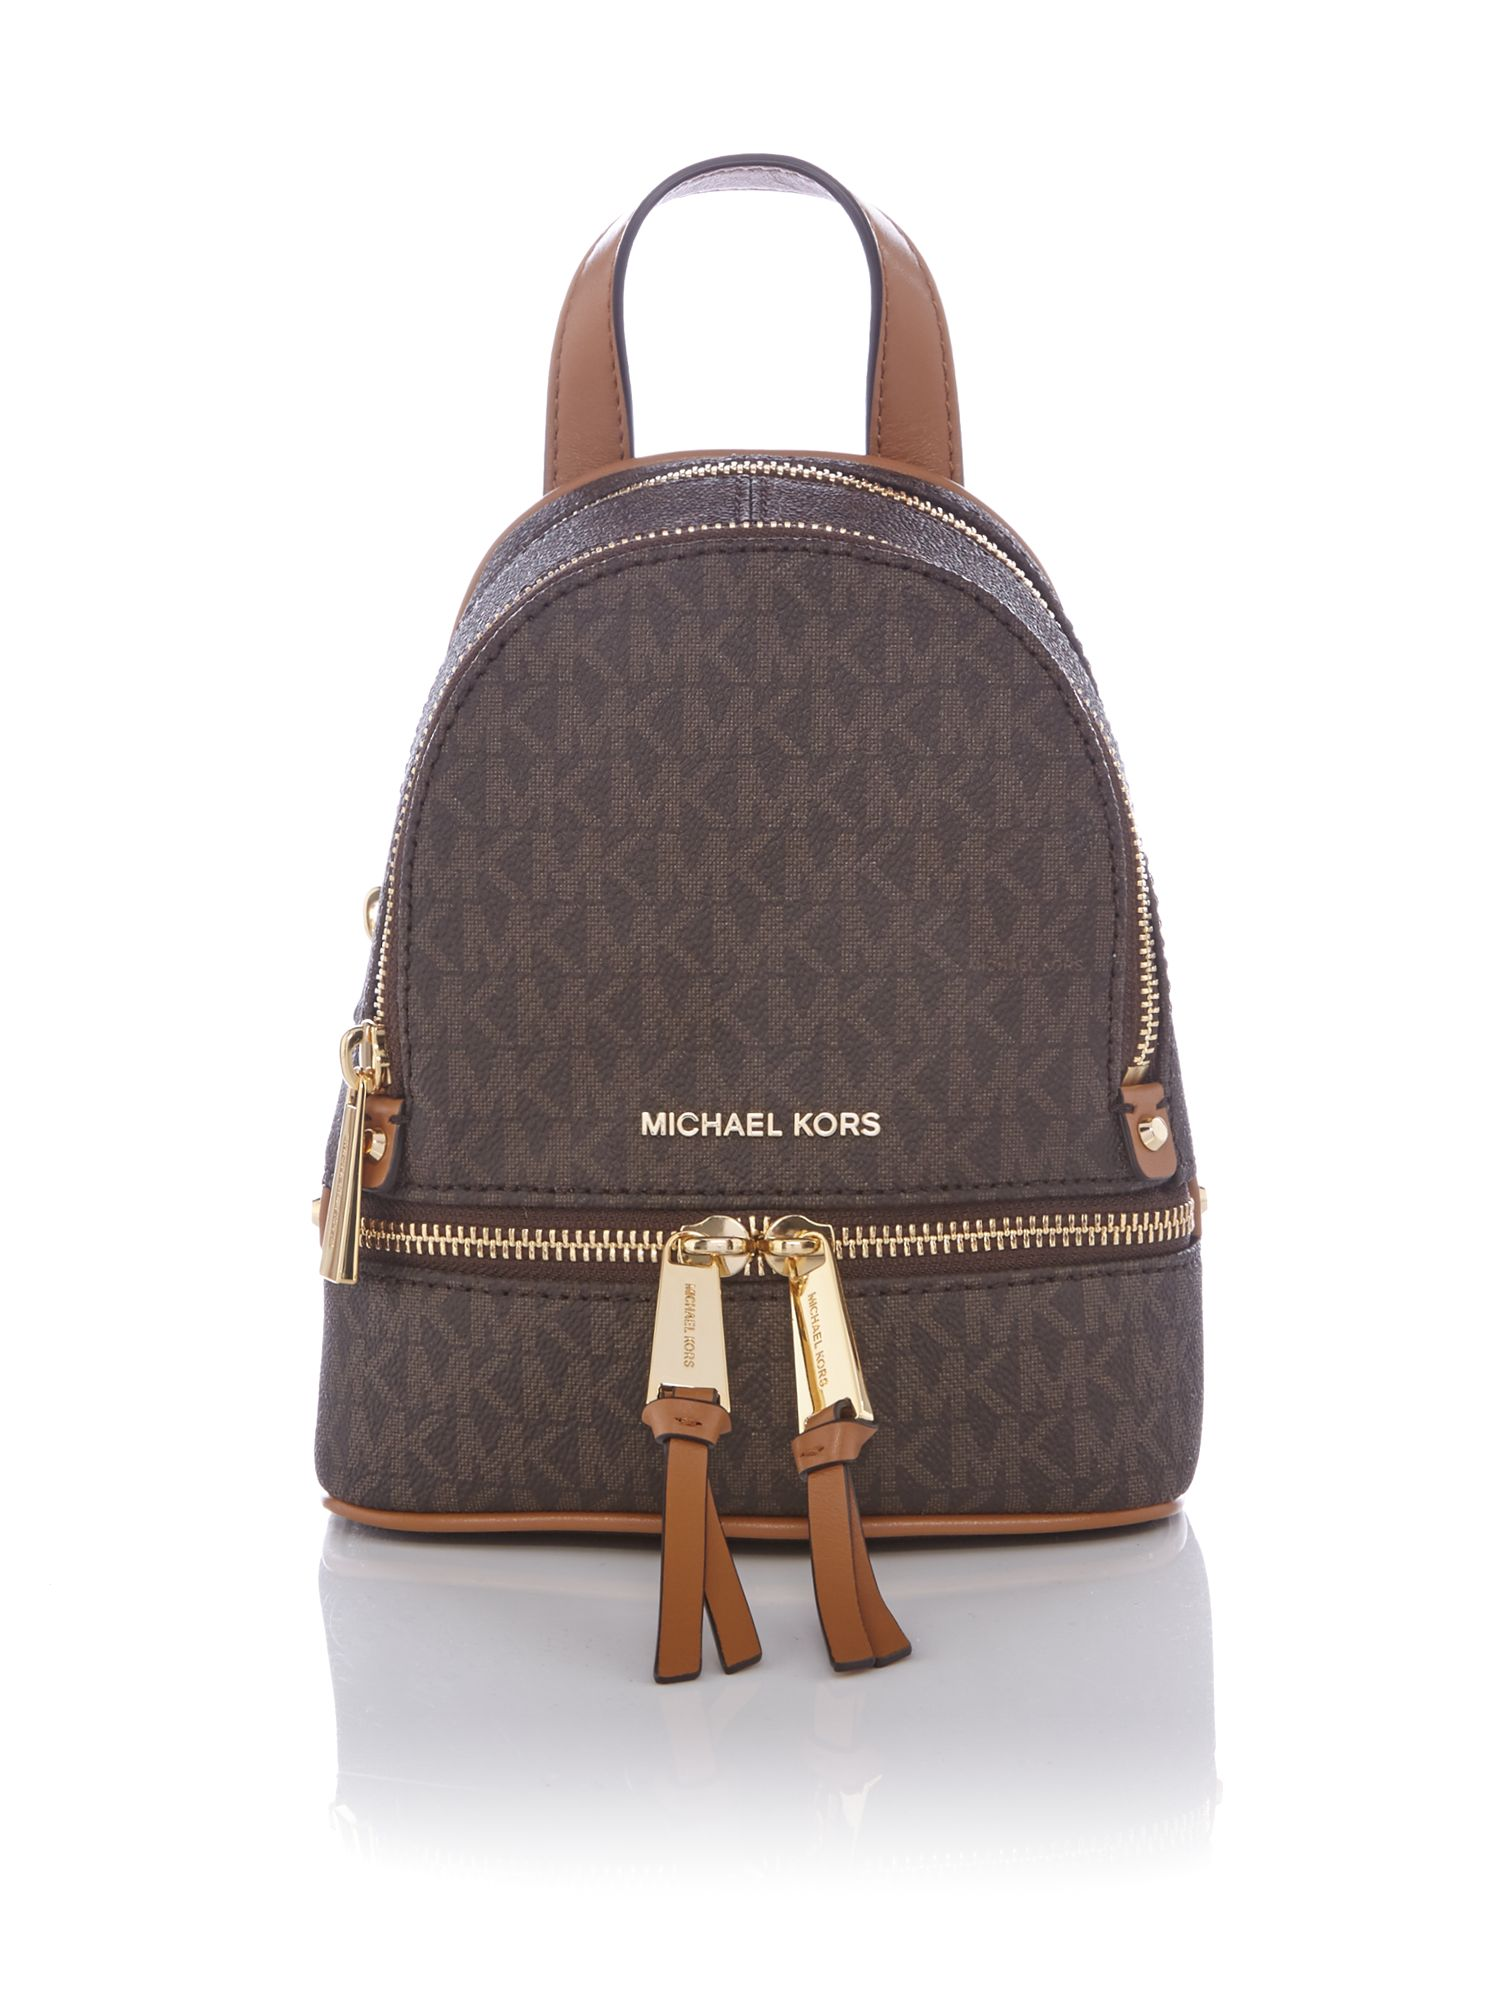 Lyst - Michael Kors Rhea Mini Logo Backpack in Brown 3d73973383